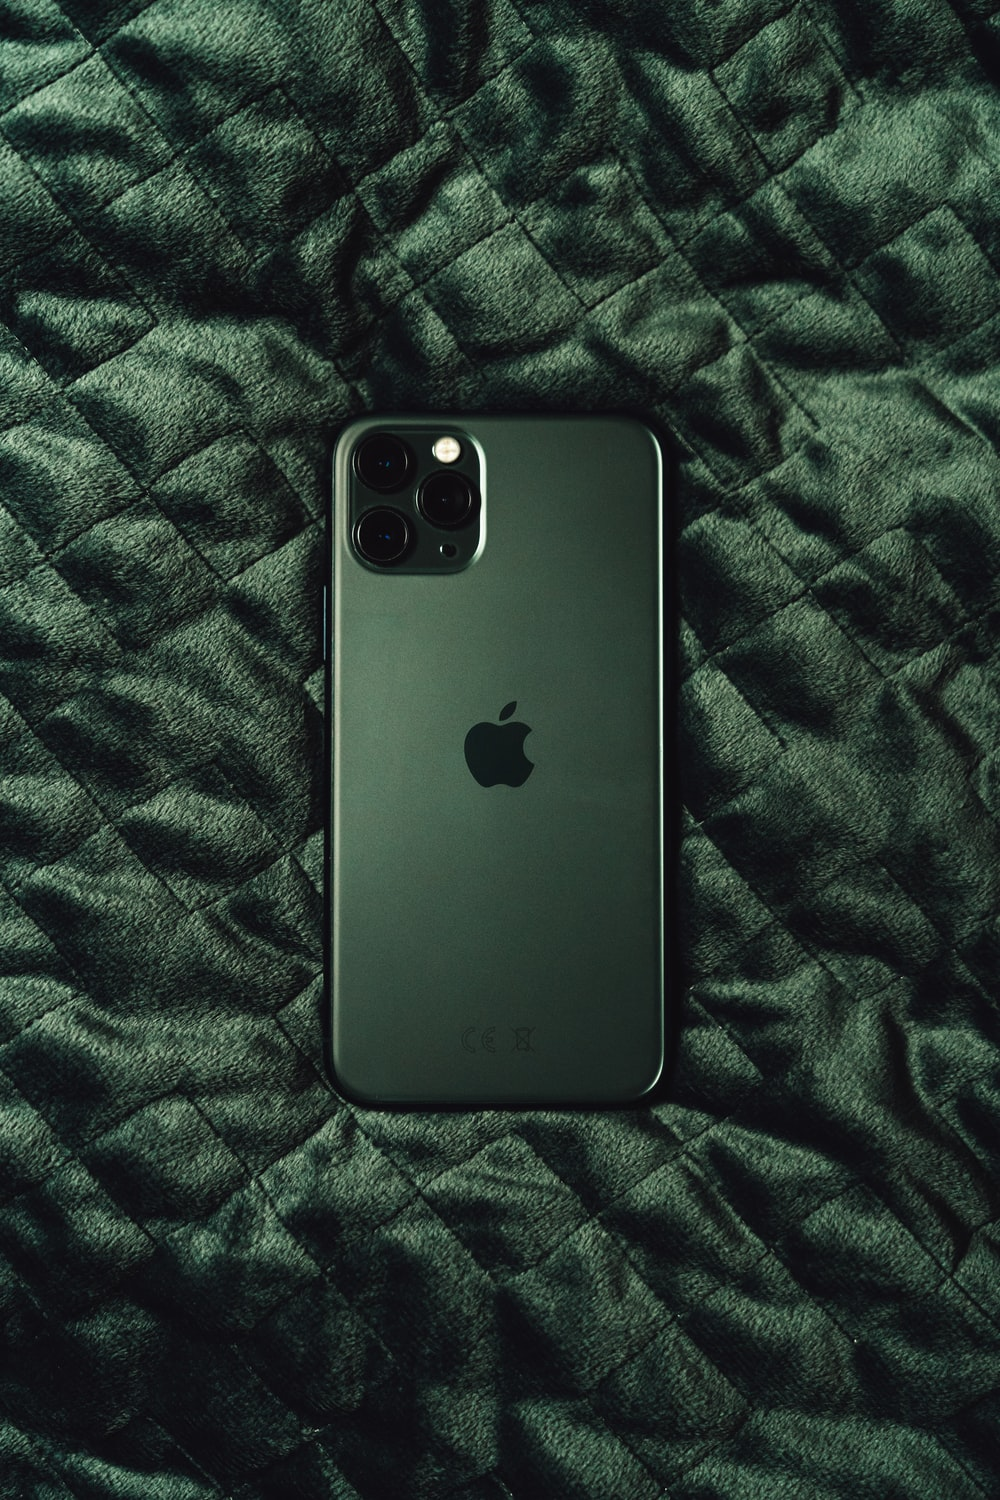 black iphone 7 plus on black and white textile